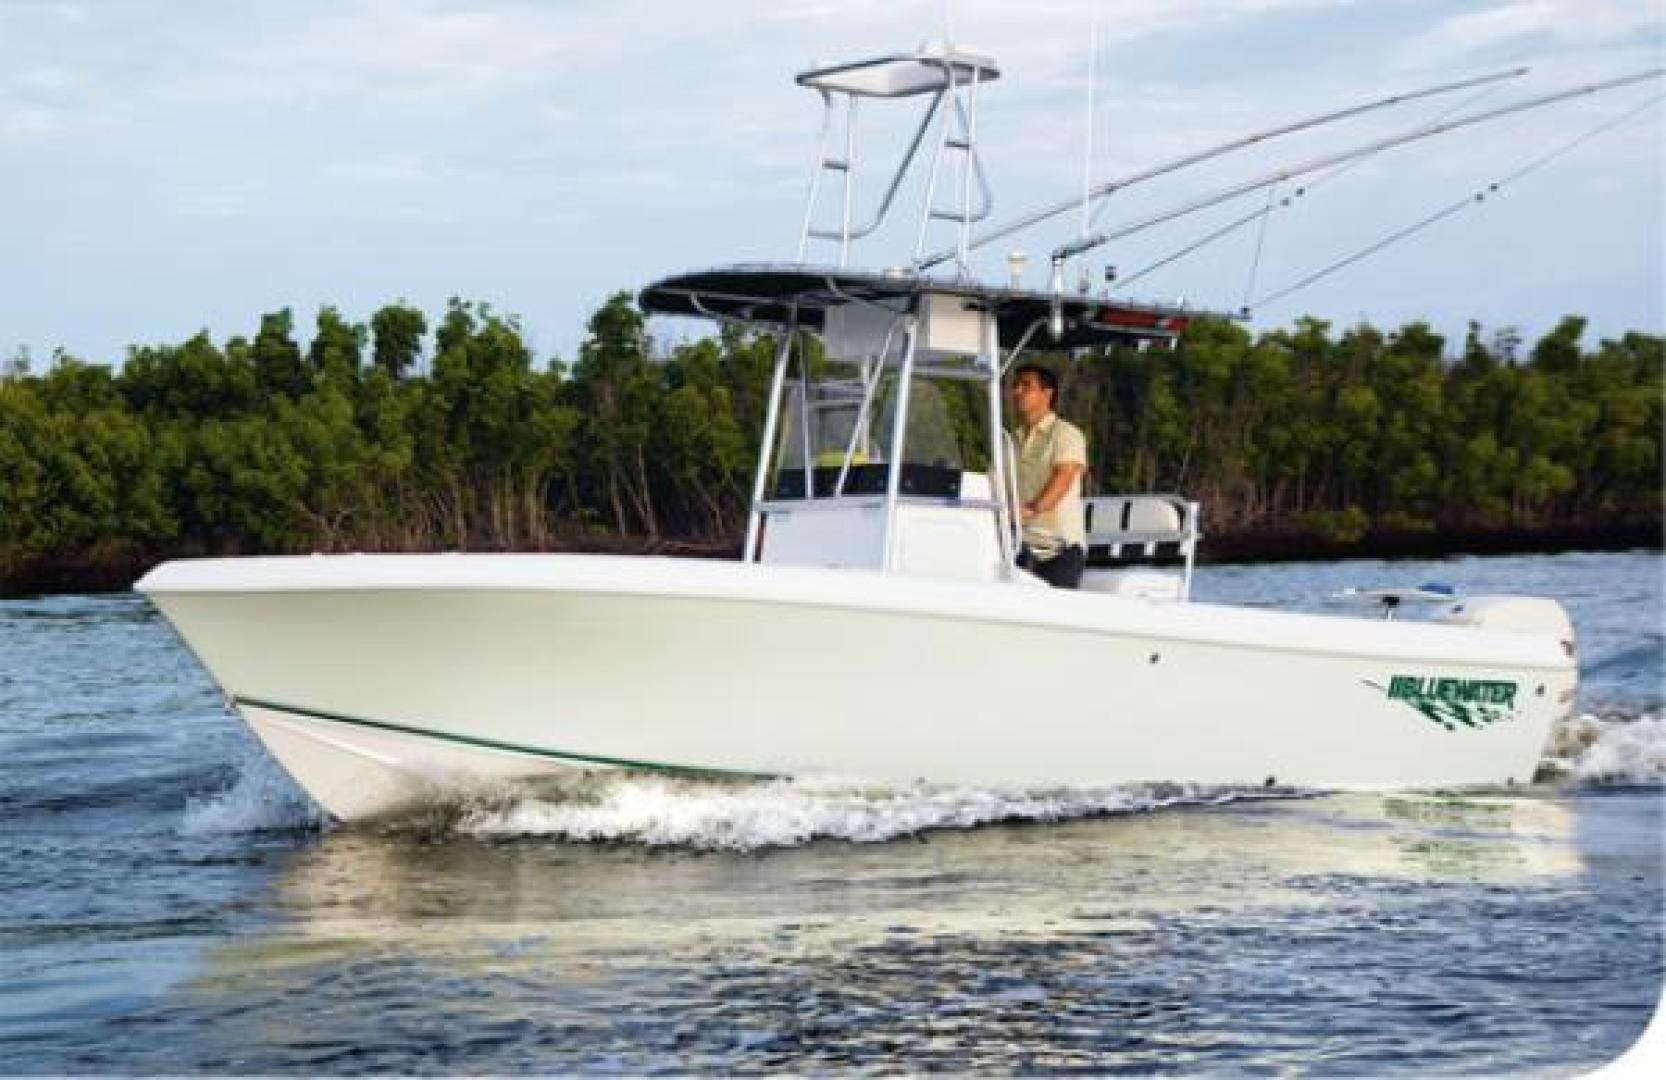 2021 Bluewater Sportfishing 22' 23t Bluewater Sportfishing 23t | Picture 5 of 7